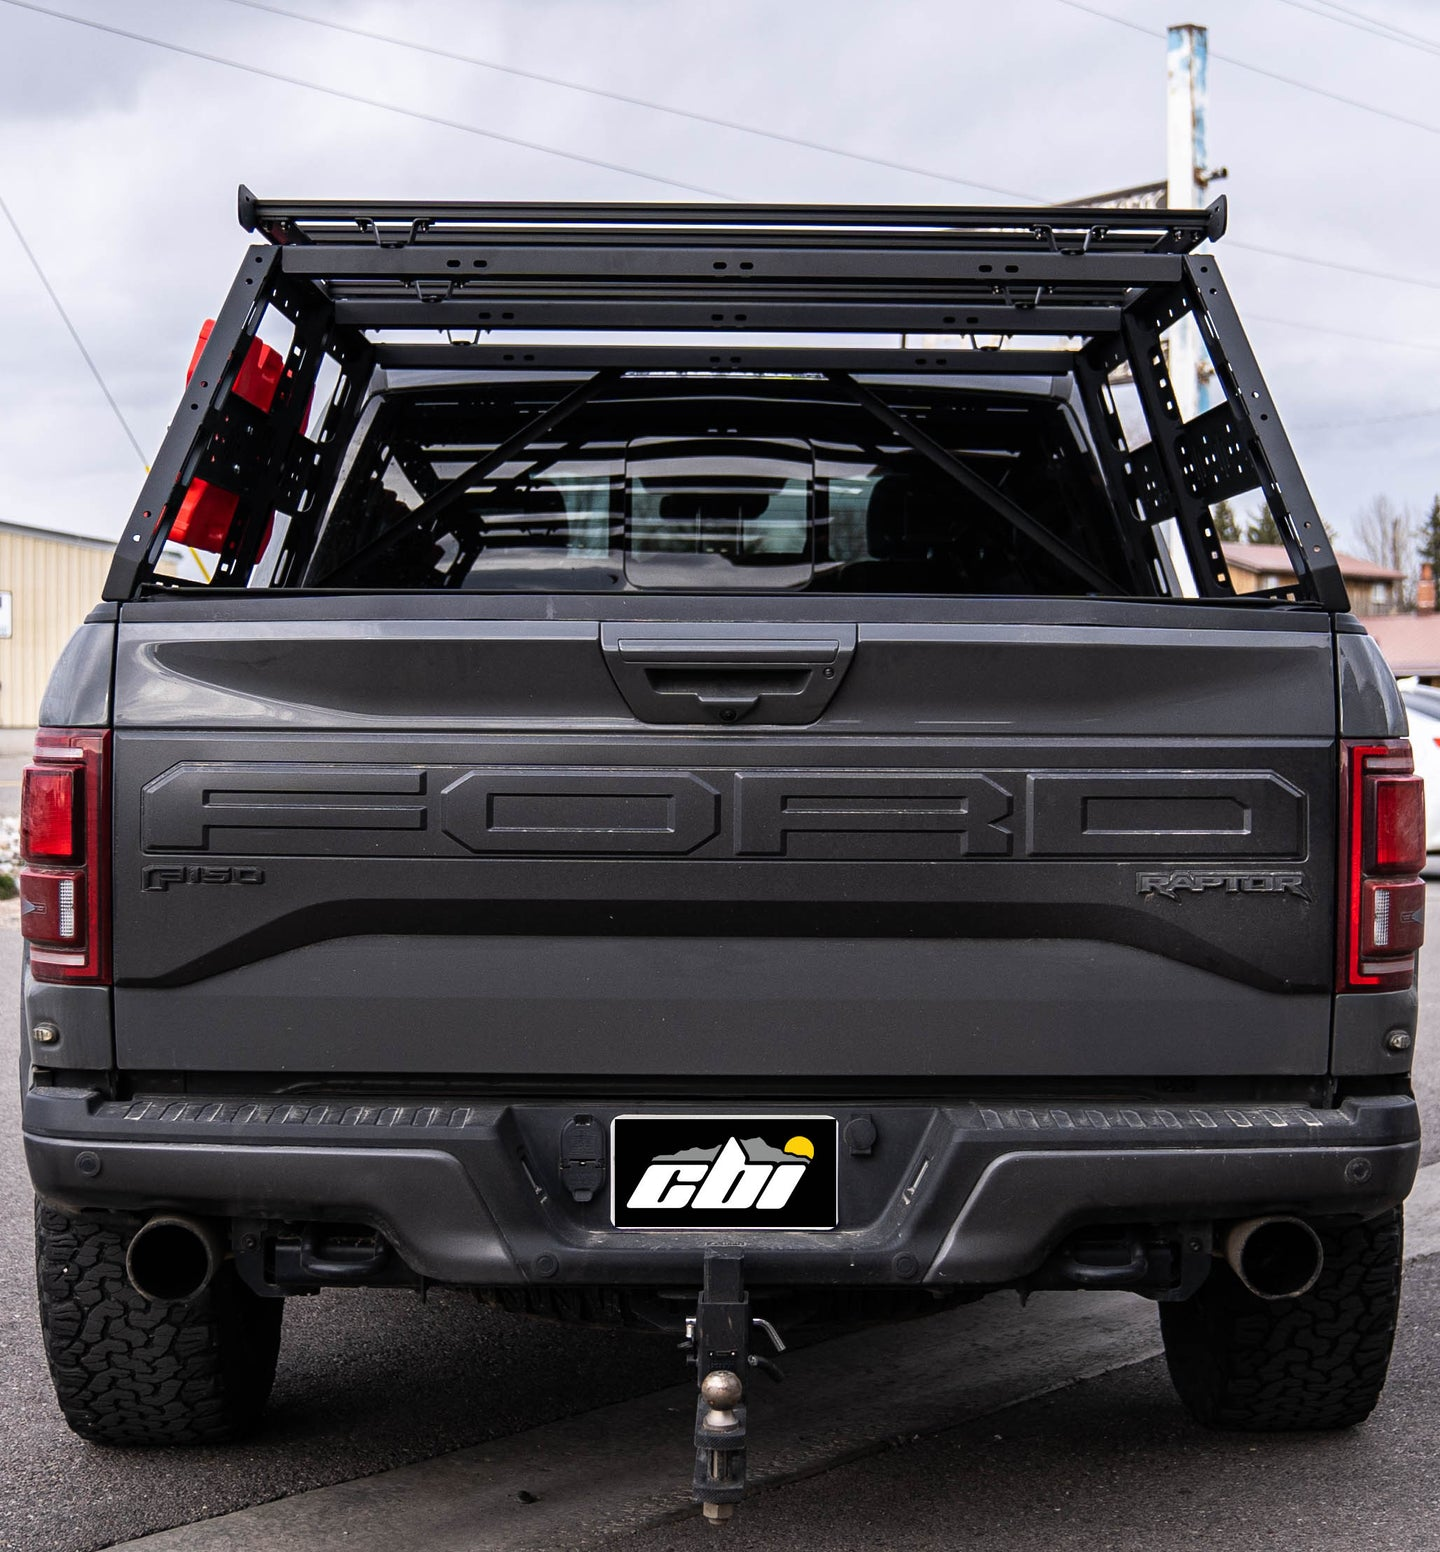 CBI Off Road Ford Raptor Cab Height Bed Rack (5'6